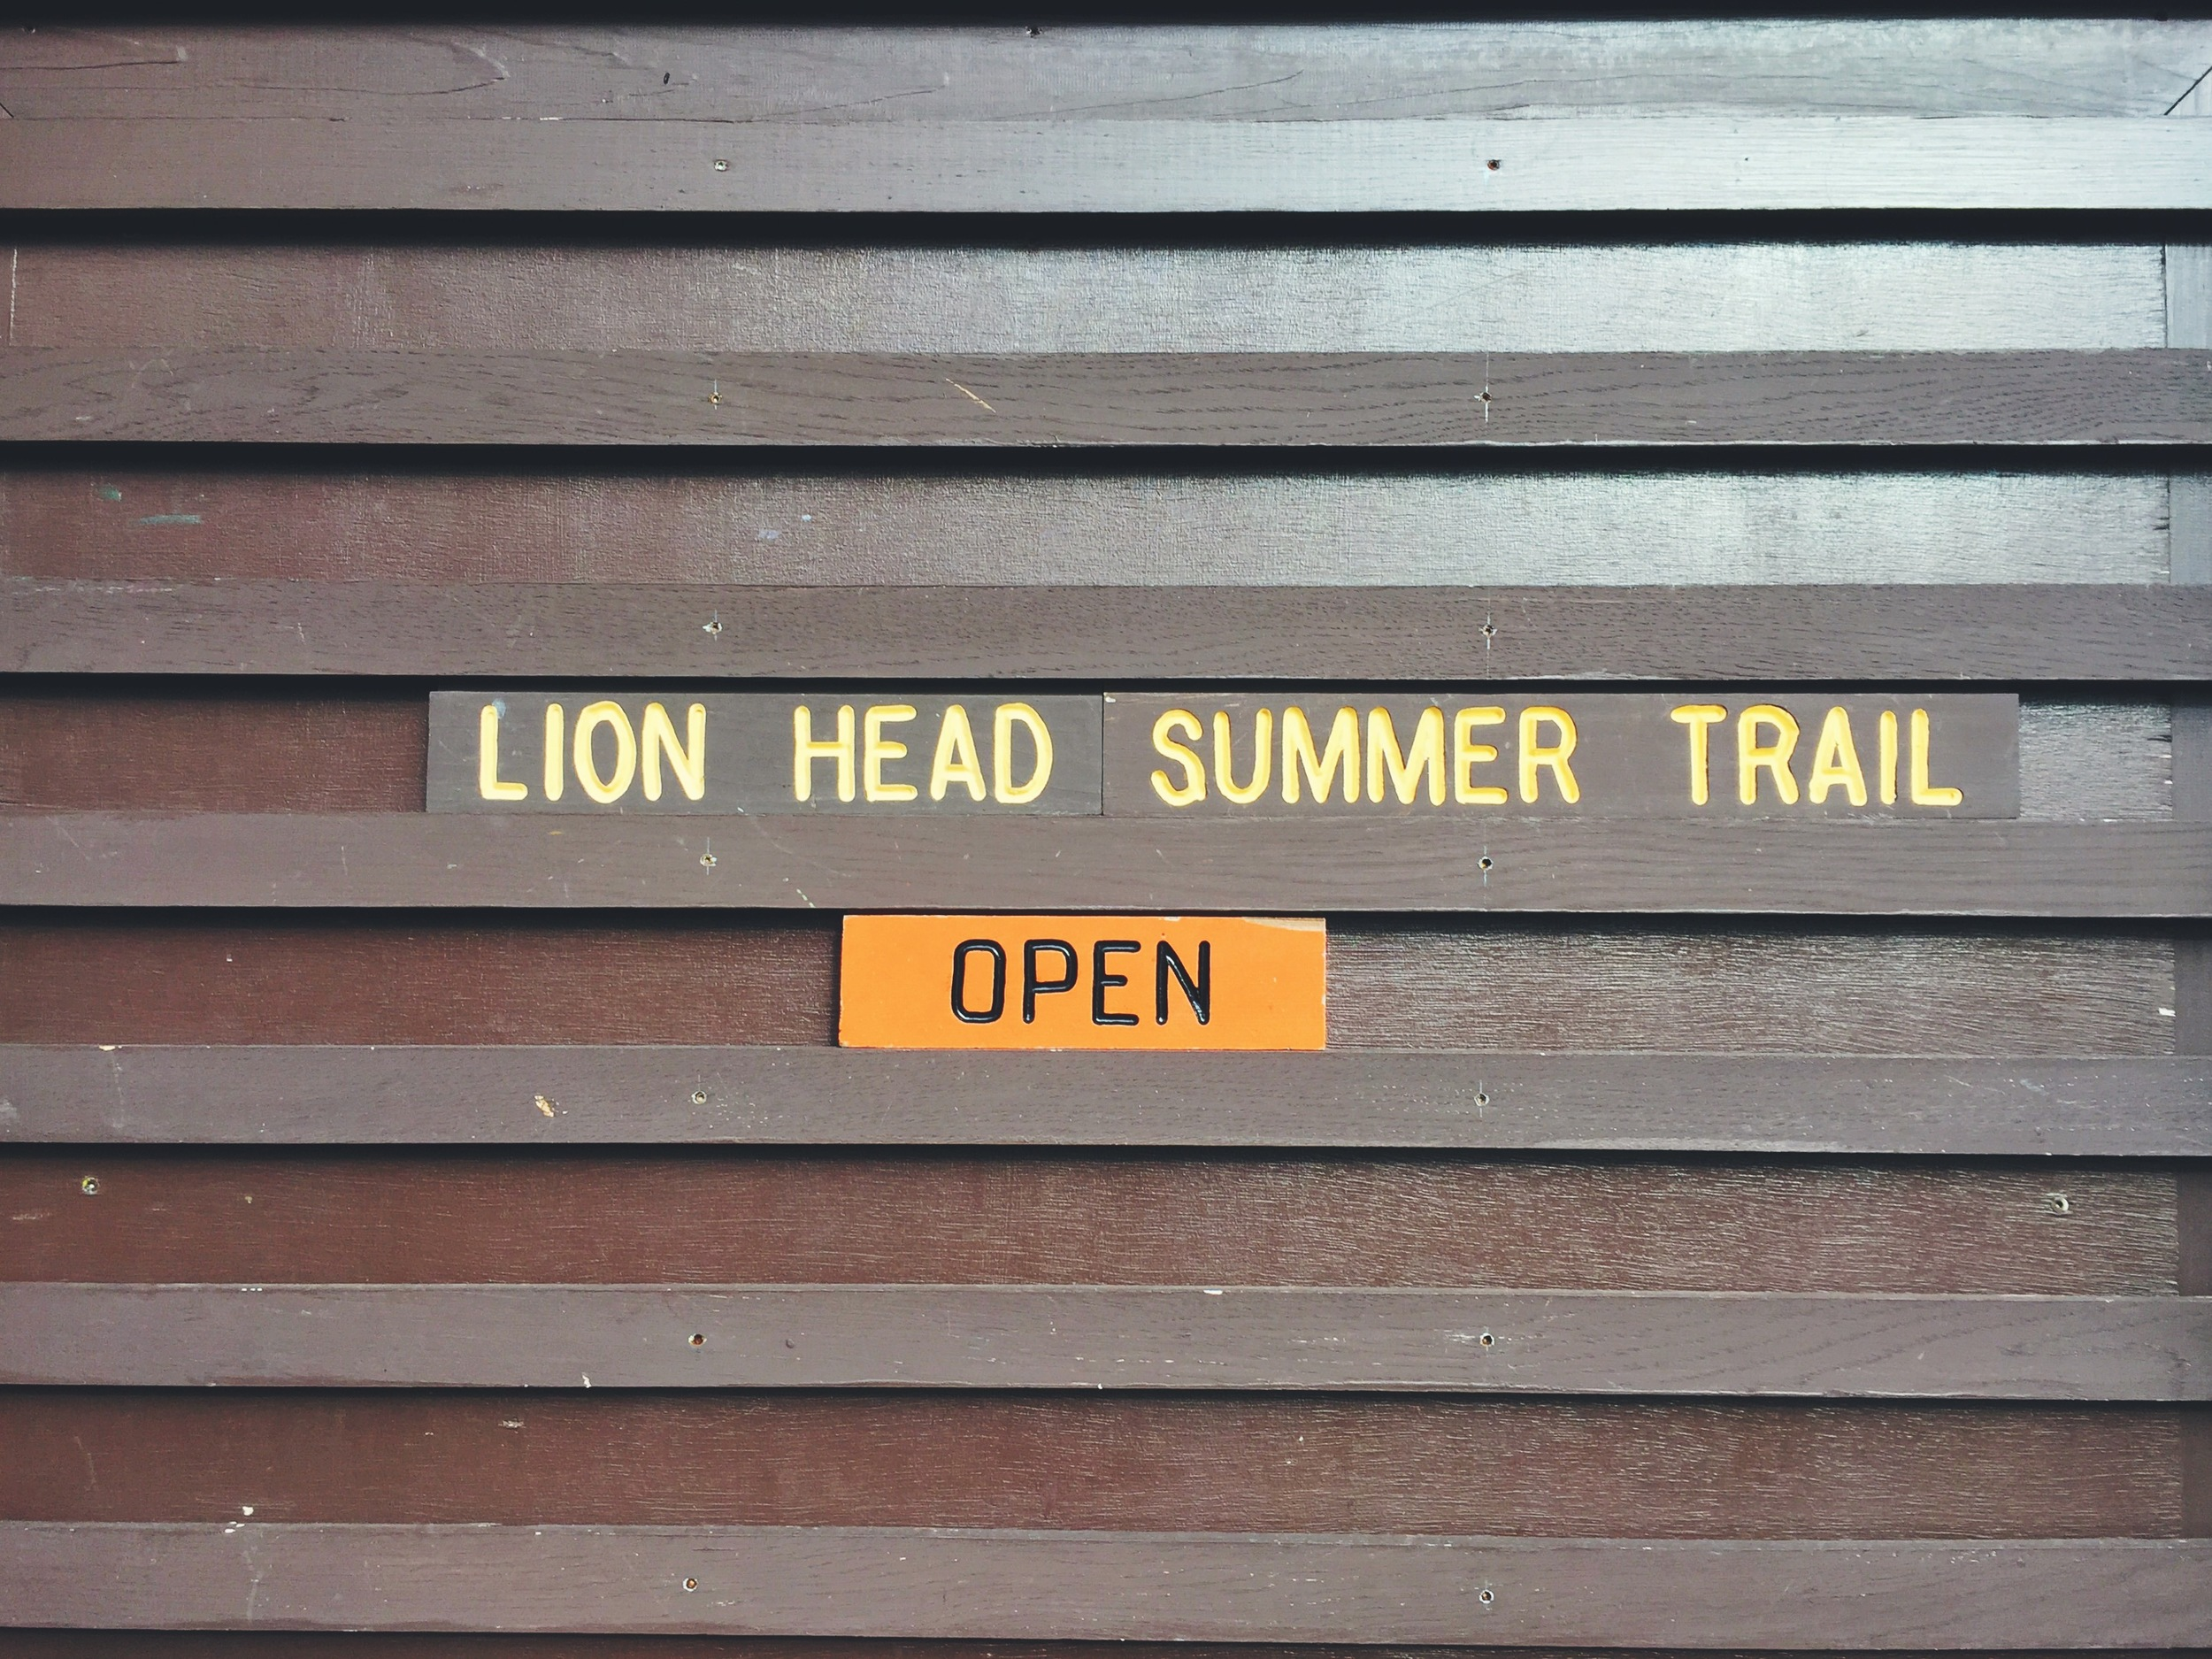 Due to the lack of snow fall, the summer trail was still open.